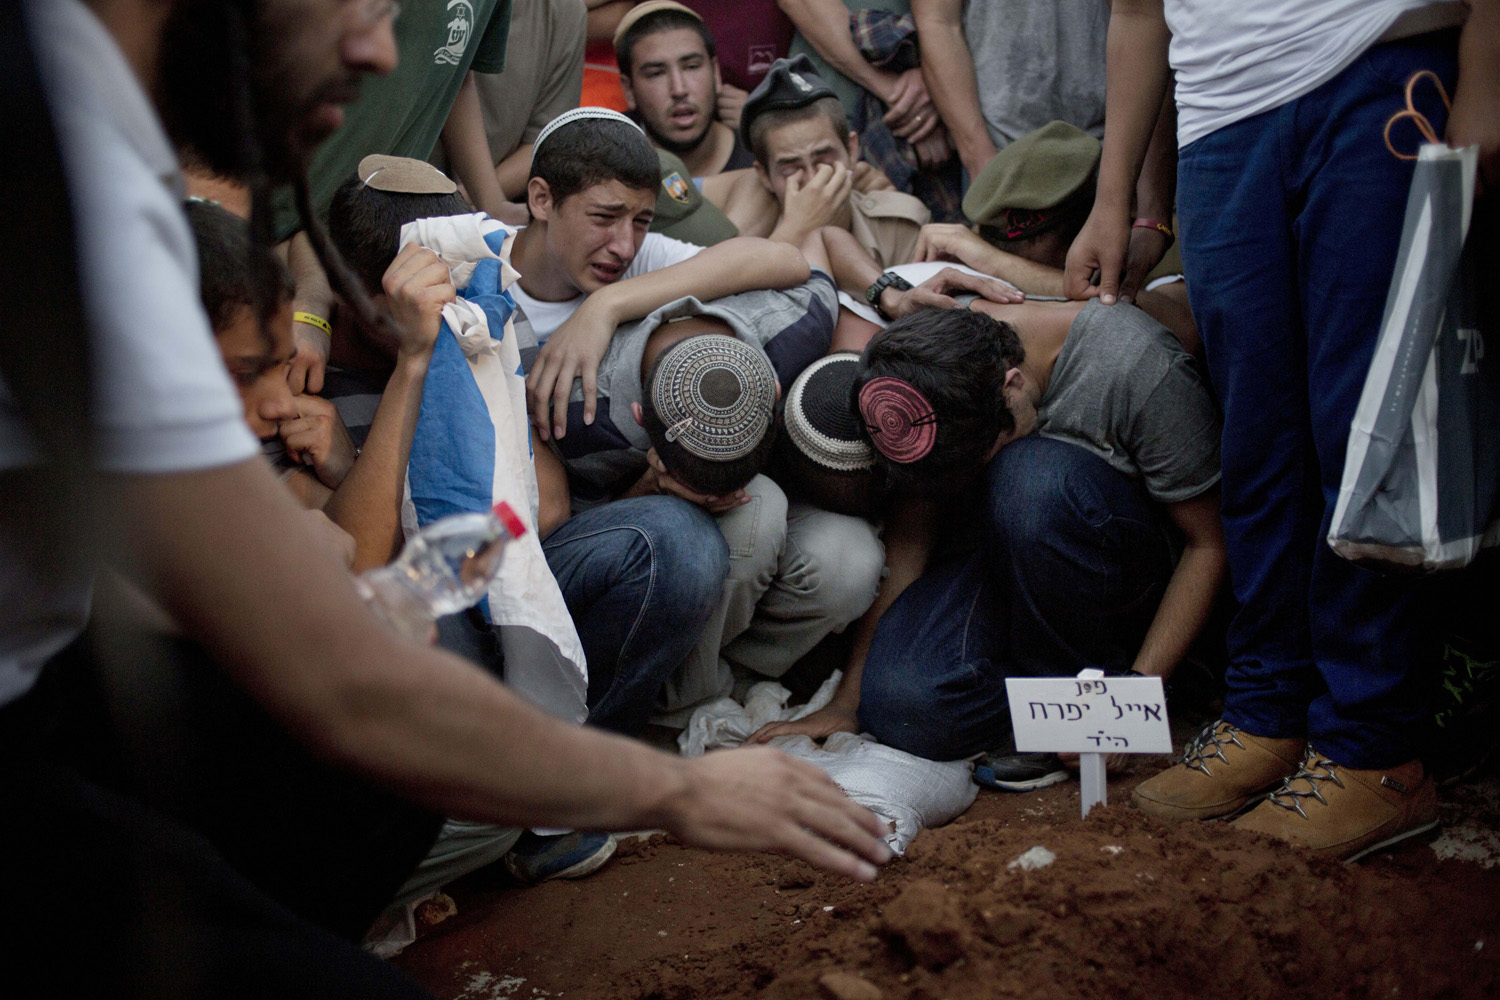 Jul. 1, 2014. Family and friends of Eyal Yifrah, Gilad Shaar, and Naftali Fraenkel , three Israeli teenagers who were abducted over two weeks ago mourn over the grave of  Eyal Yifrah during their funeral in Modiin, Israel.